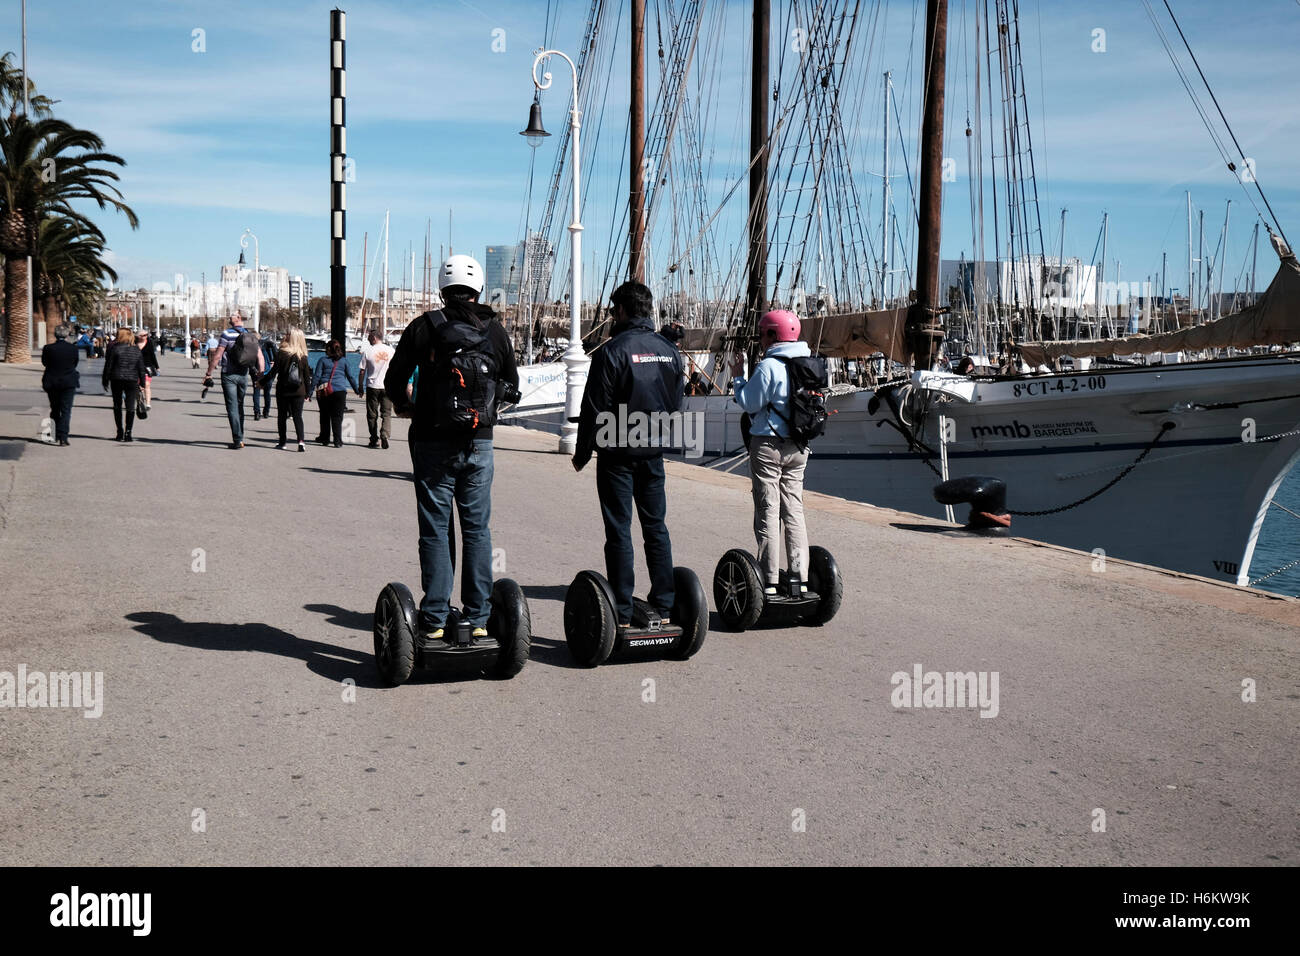 Three travellers using Segway two wheeled vehicles along Port Vell, Barcelona, Spain - Stock Image